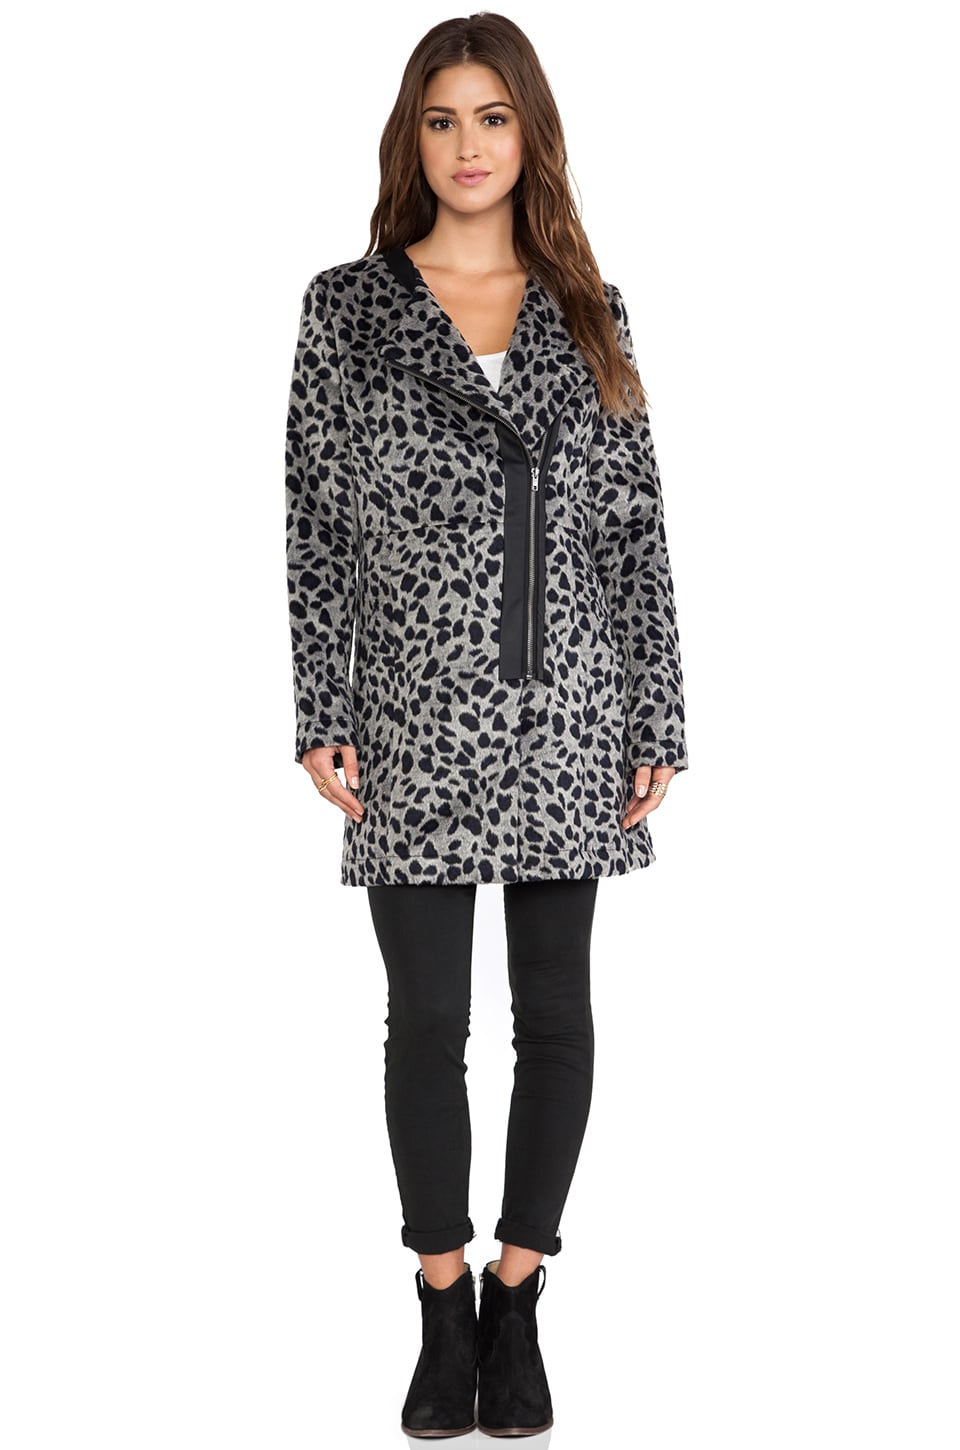 BB Dakota Elden Leopard Faux Fur Jacket in Black